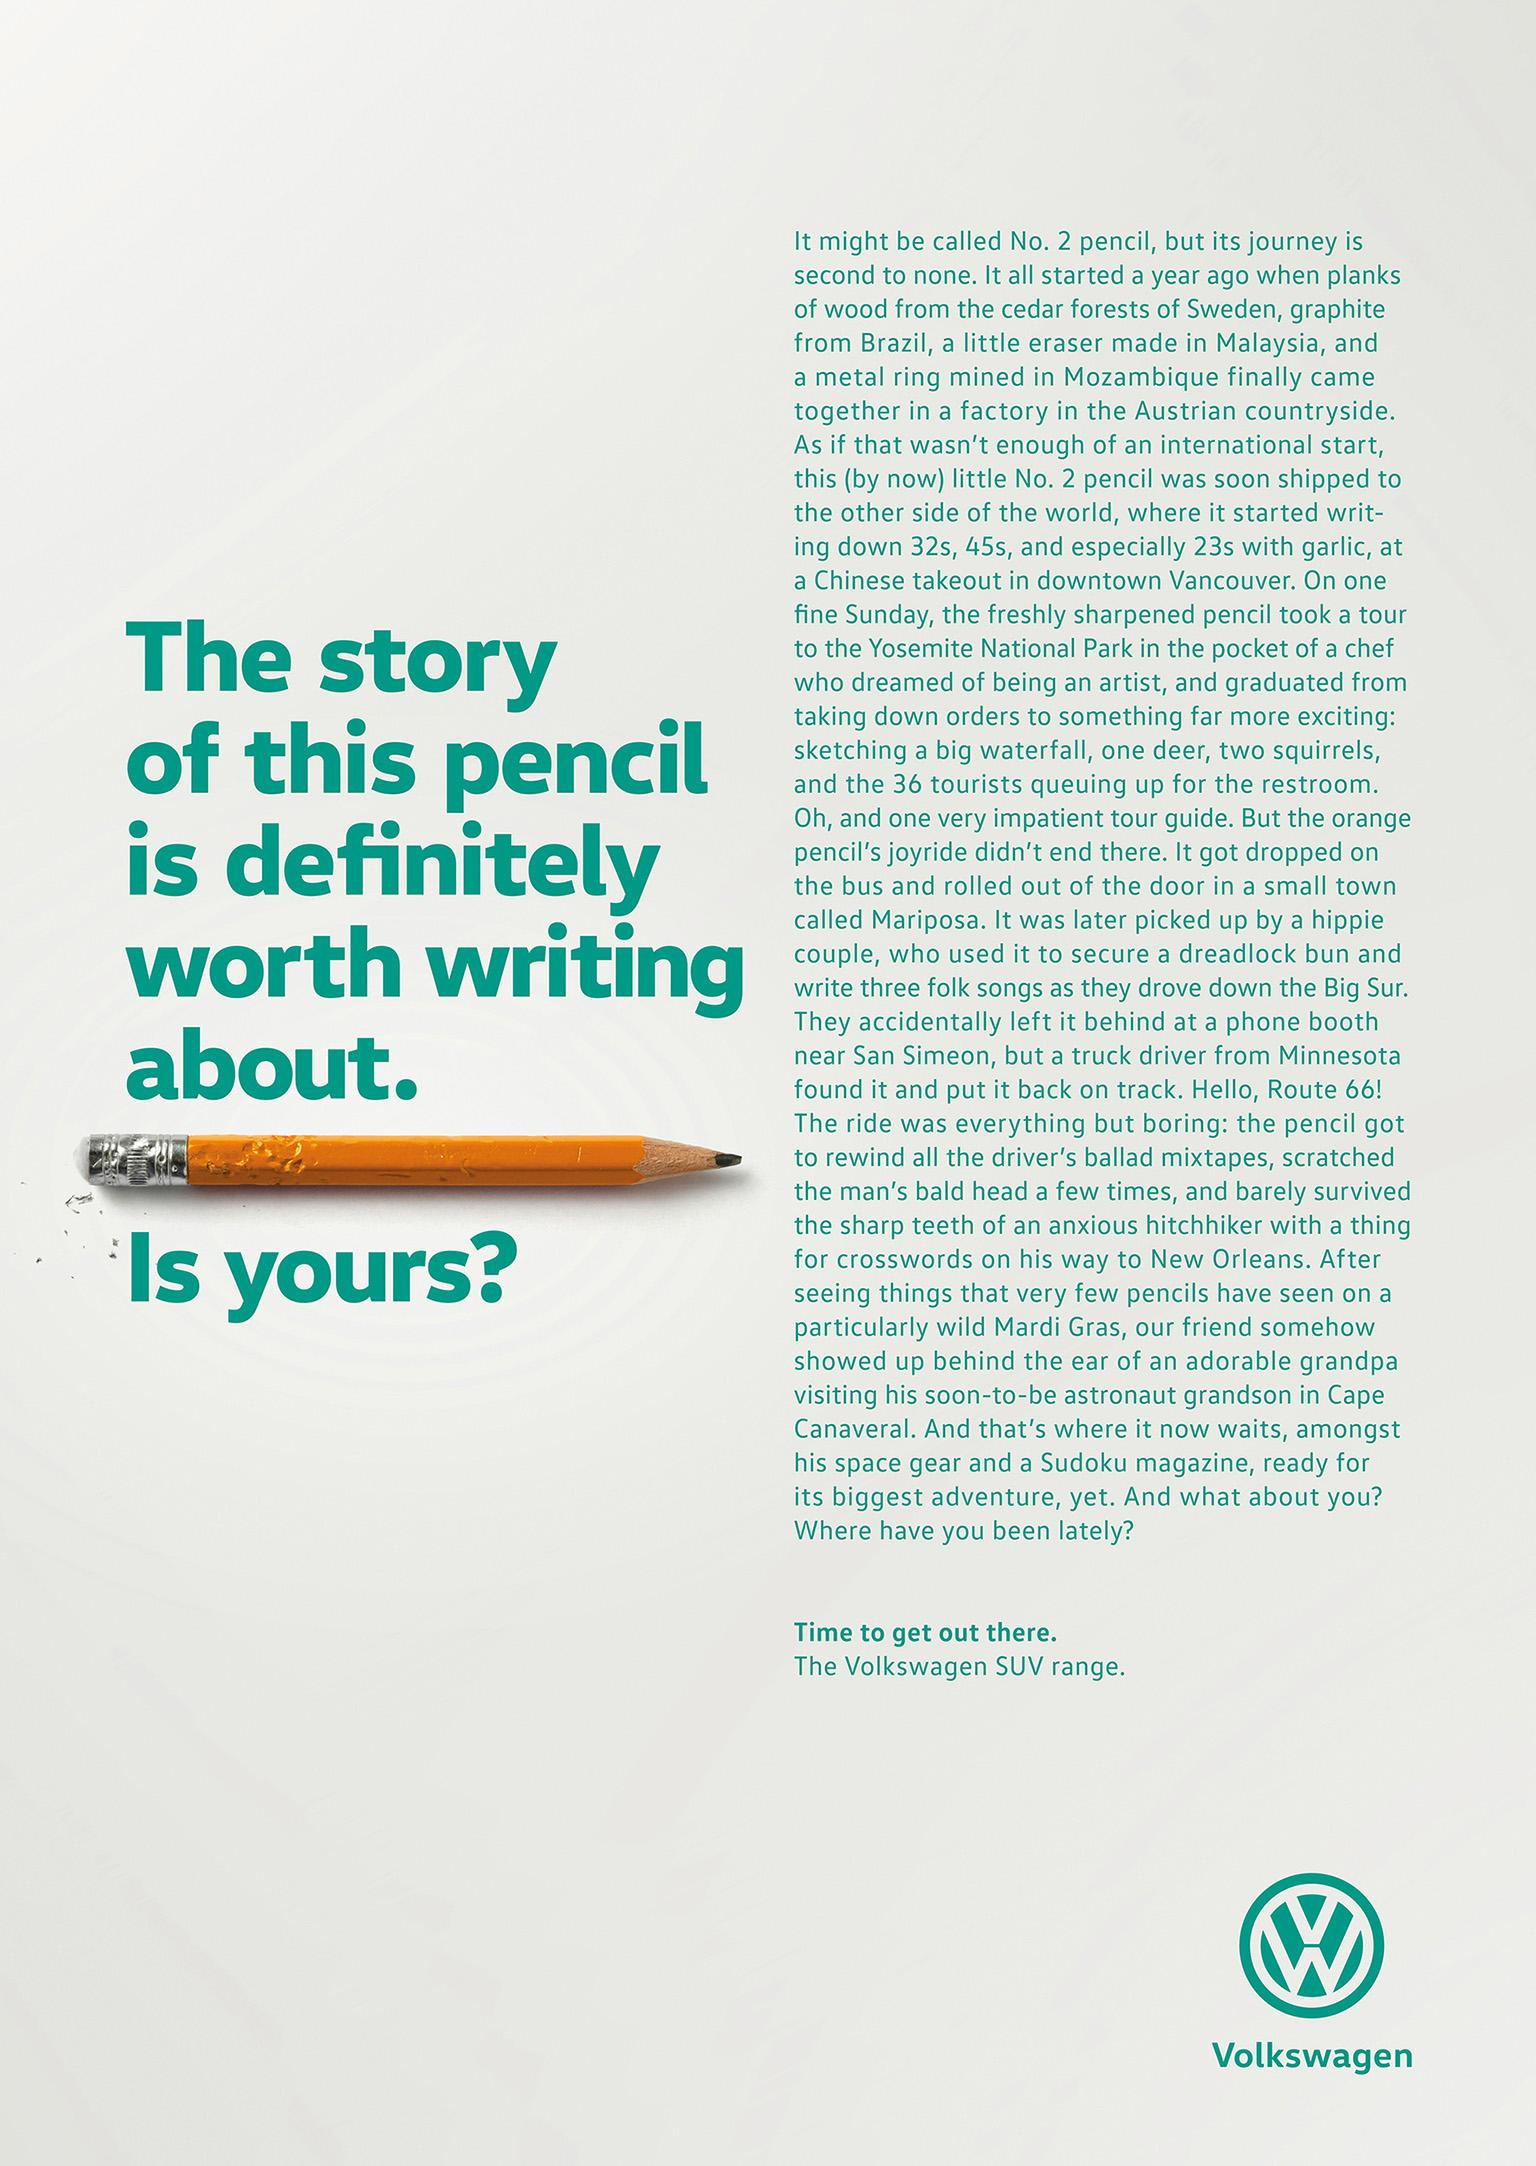 Volkswagen Print Advert By DDB: Pencil | Ads of the World™